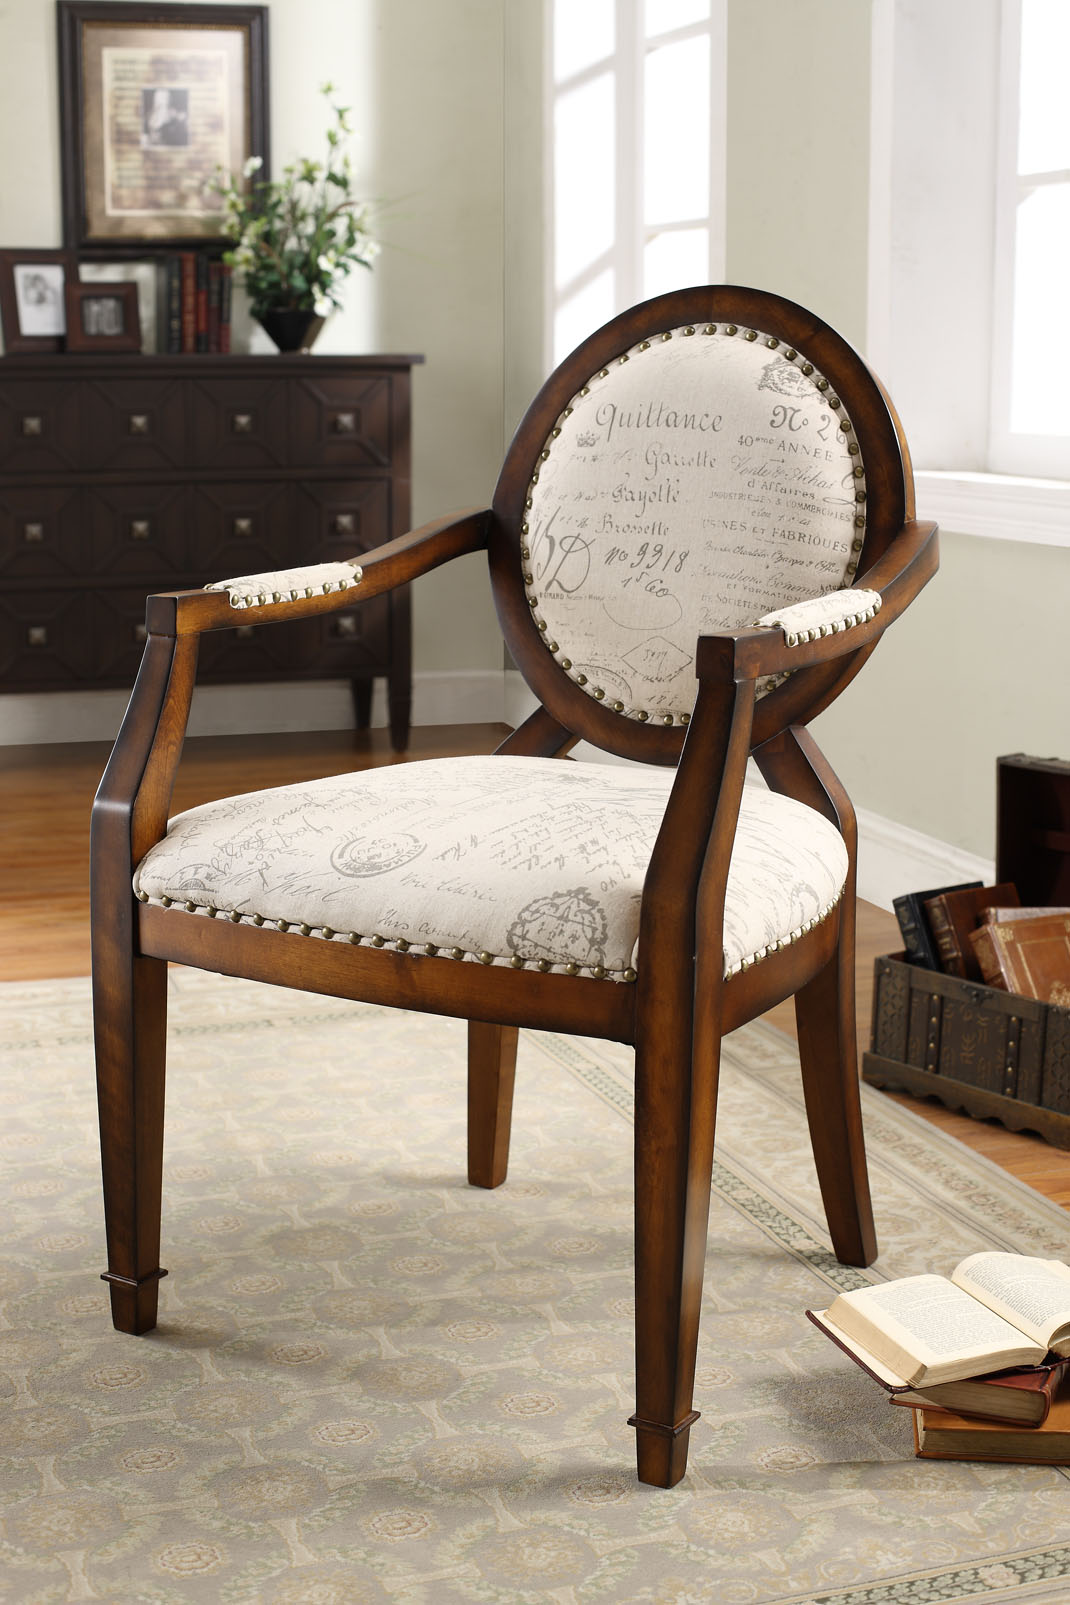 Wooden Chairs Amazing Antique Wooden Chair Designs For Timeless Elegance